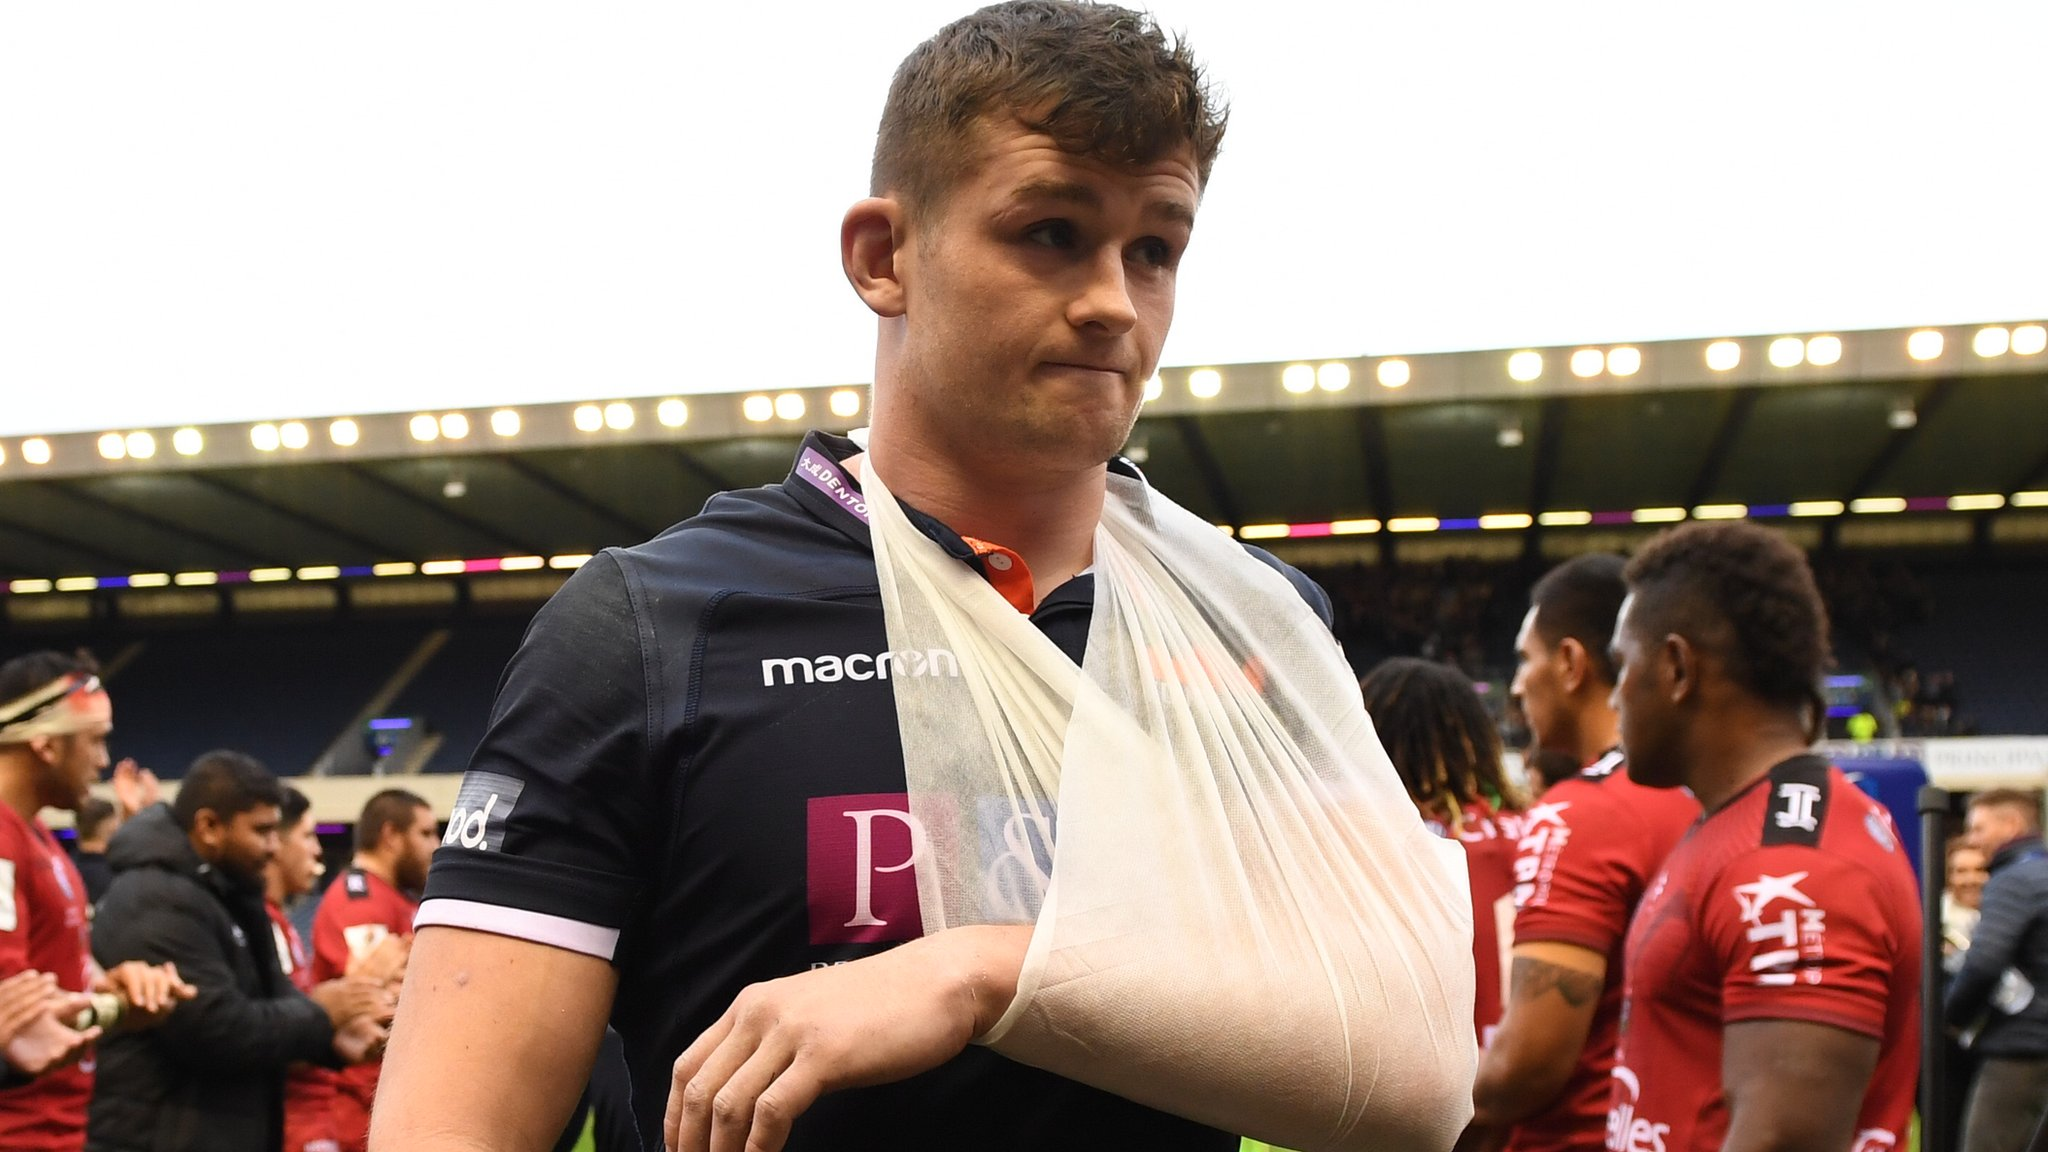 Injured flanker Bradbury may miss Scotland's autumn Tests